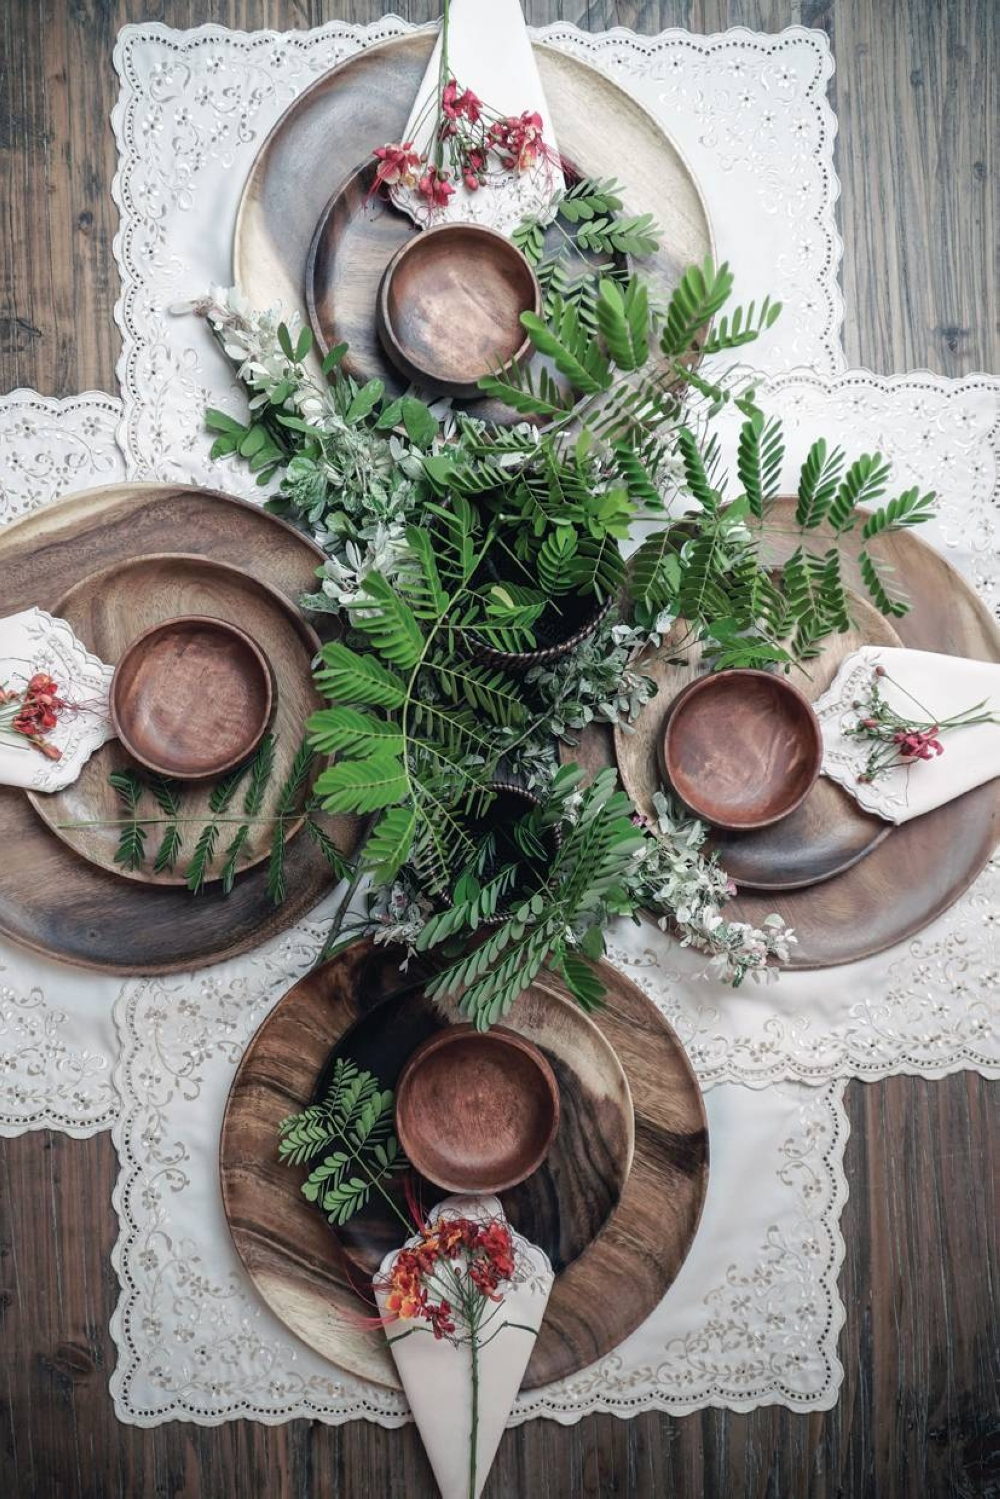 Create rustic tablescapes at home with acacia dinnerware and help support the Pampangueño artisans behind them.